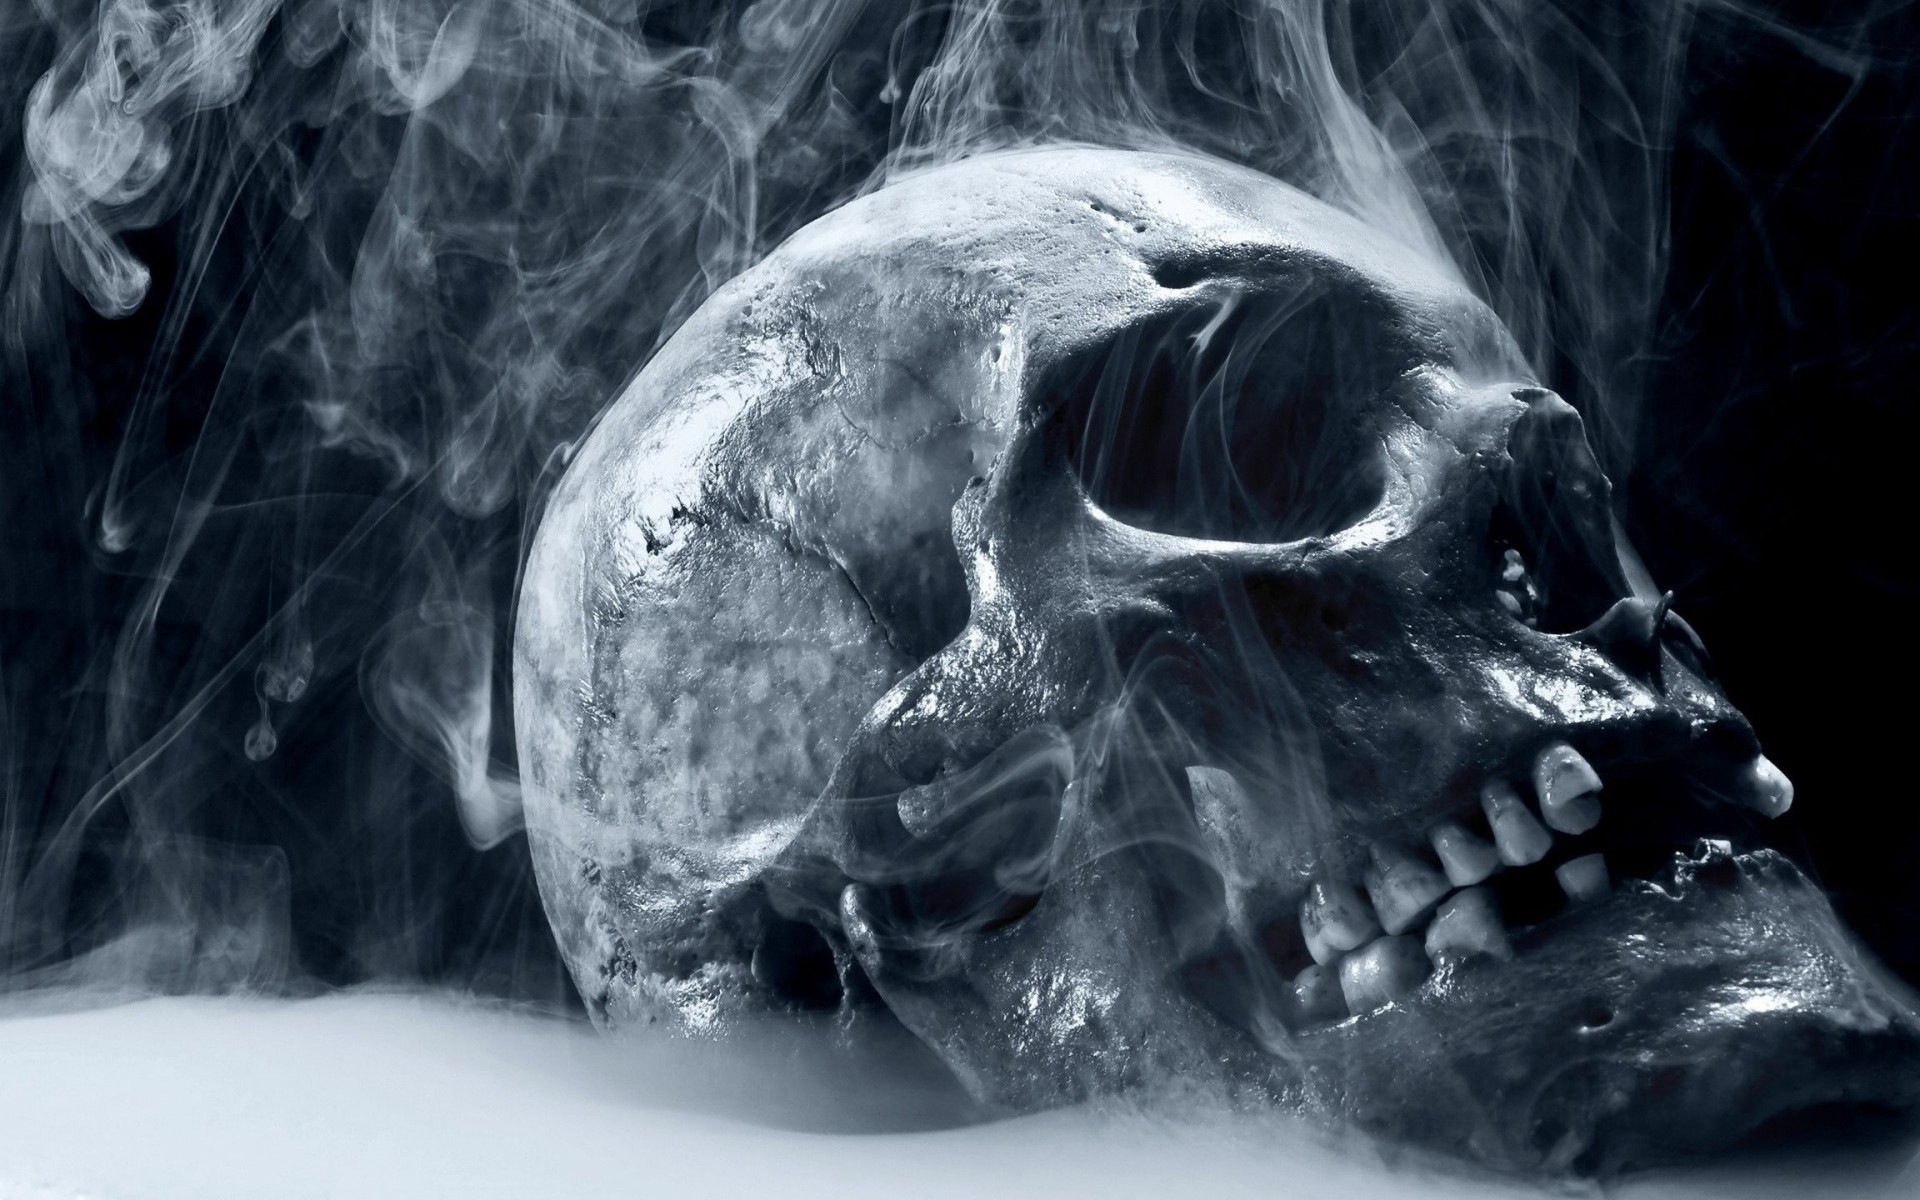 Cool Skull | Cool Skull Pictures 1080p Wallpaper with Resolution